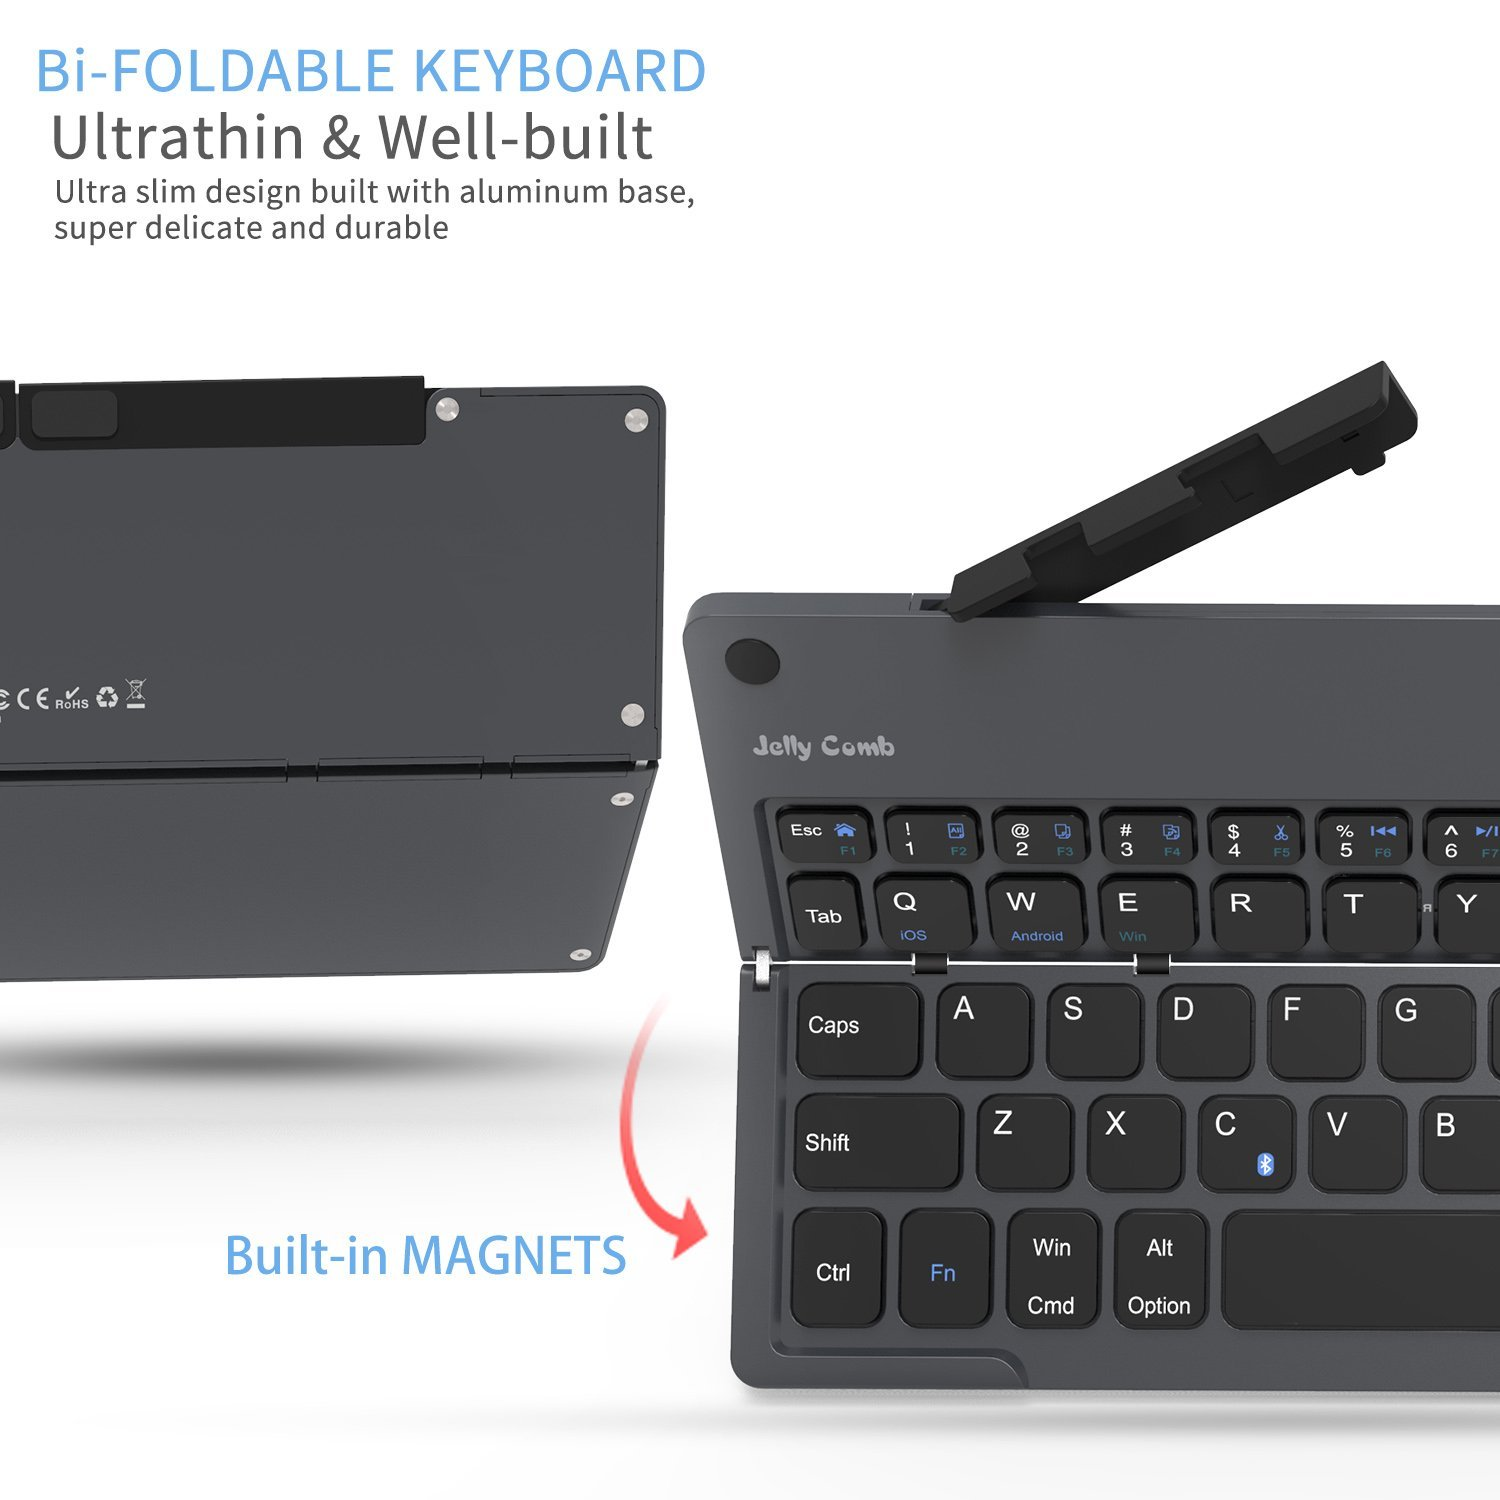 Foldable Bluetooth Keyboard, Jelly Comb B028 Portable Folding Rechargeable Bluetooth Keyboard with Built-in Stand for Android iOS Tablet Smartphone Windows and More-(Dark Grey) by Jelly Comb (Image #4)